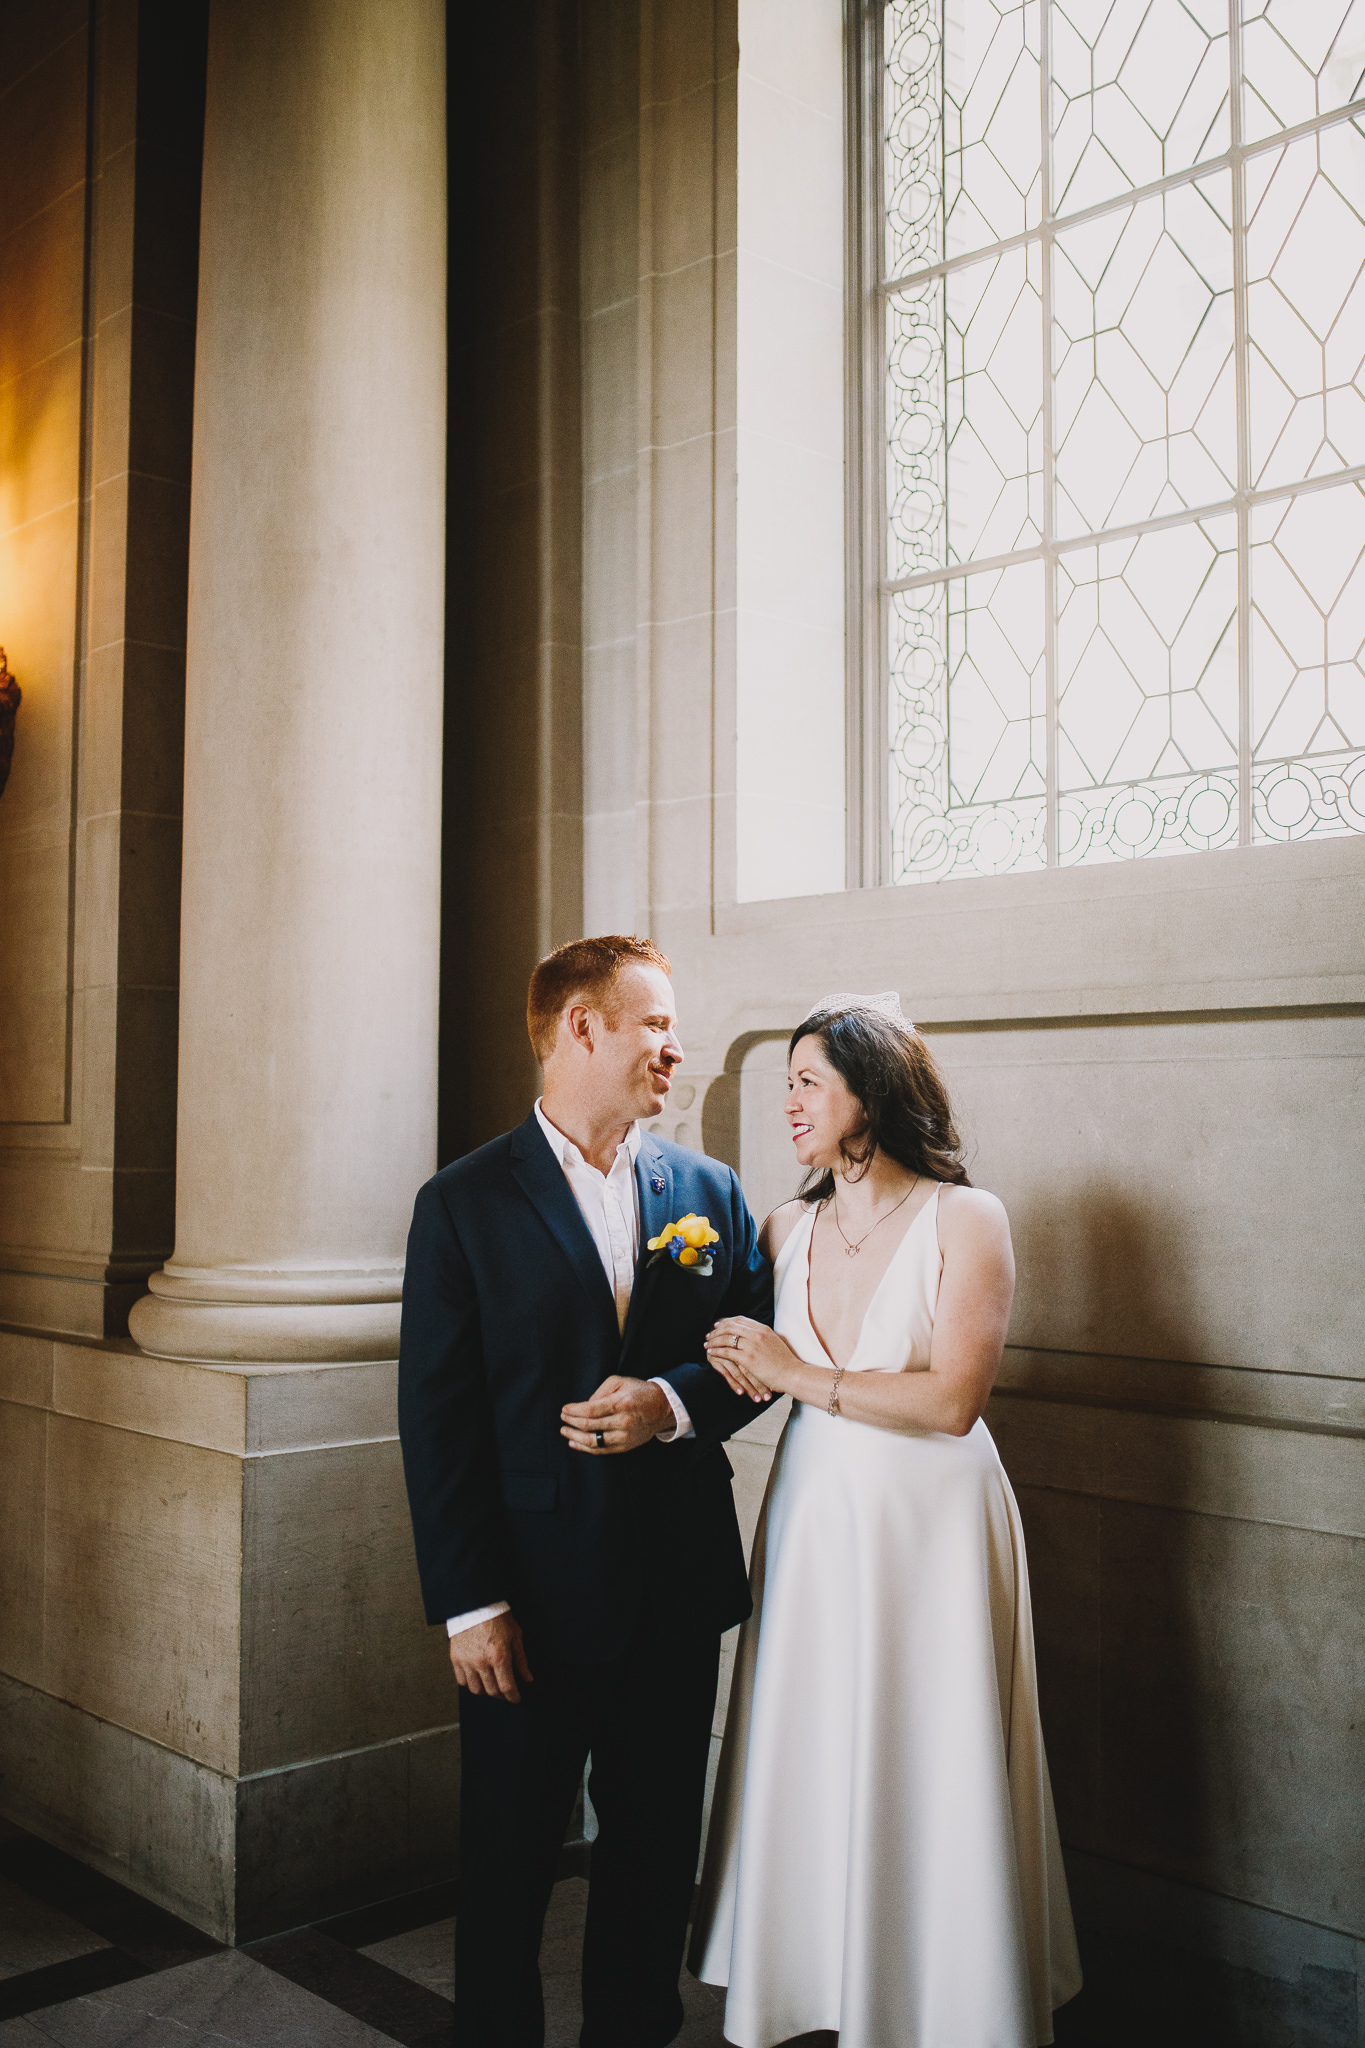 Archer Inspired Photography SF City Hall Elopement Wedding Lifestyle Documentary Affordable Photographer-167.jpg